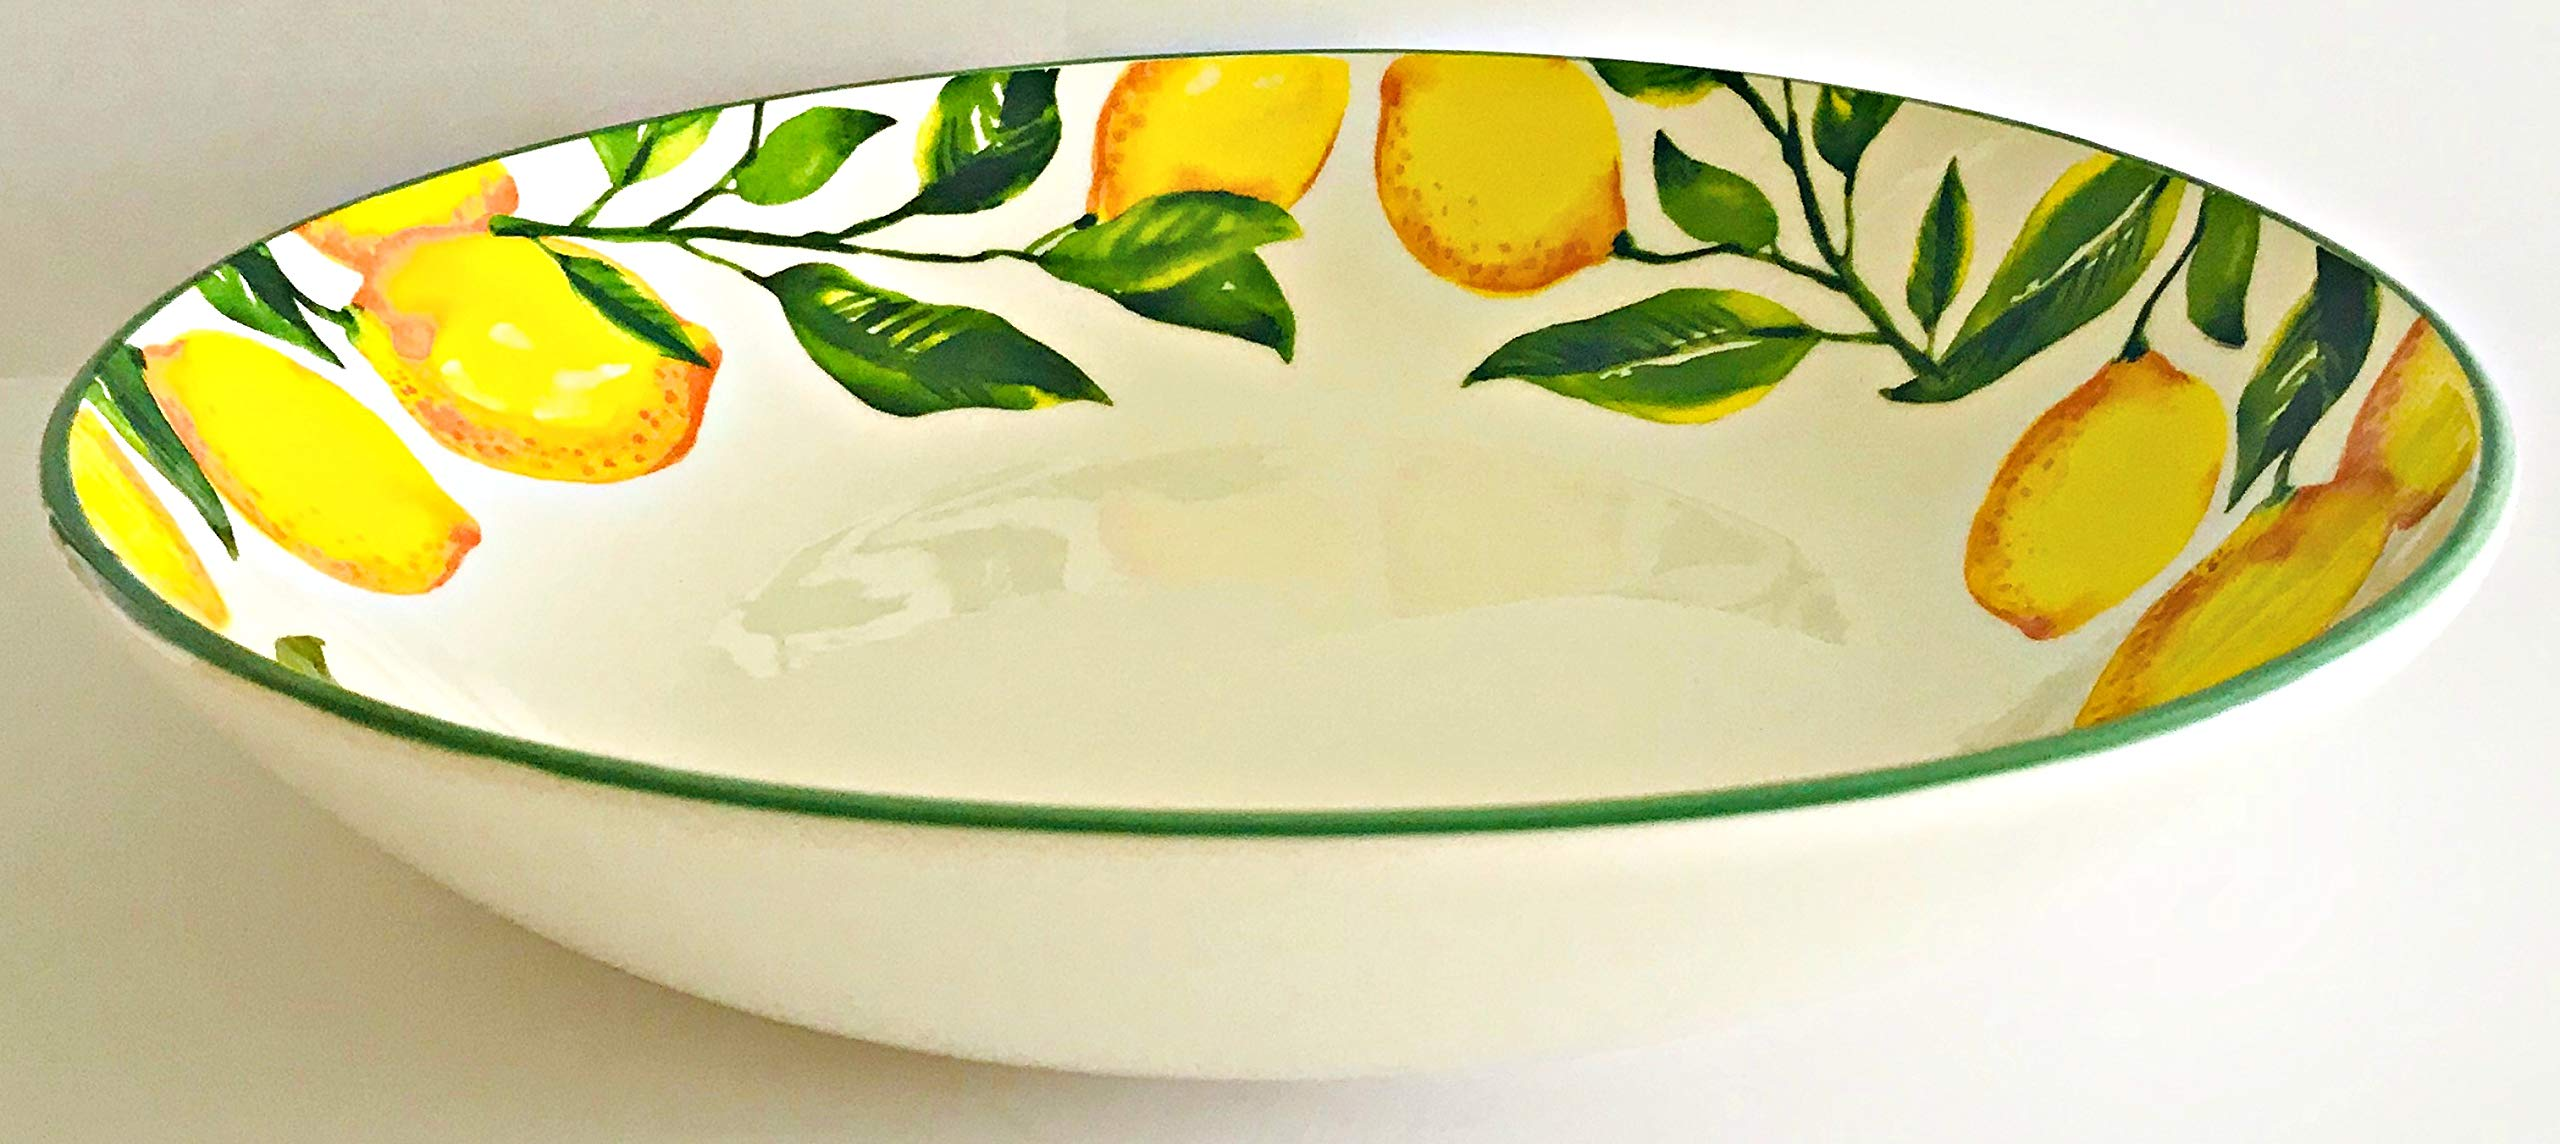 CMG Hand Painted in Portugal | Bright Yellow Lemons and Green Leaves Decorated with A Green Edge White Ceramic Serving | Pasta Bowls (Serving Bowl 11.75 x 2.25 inches)